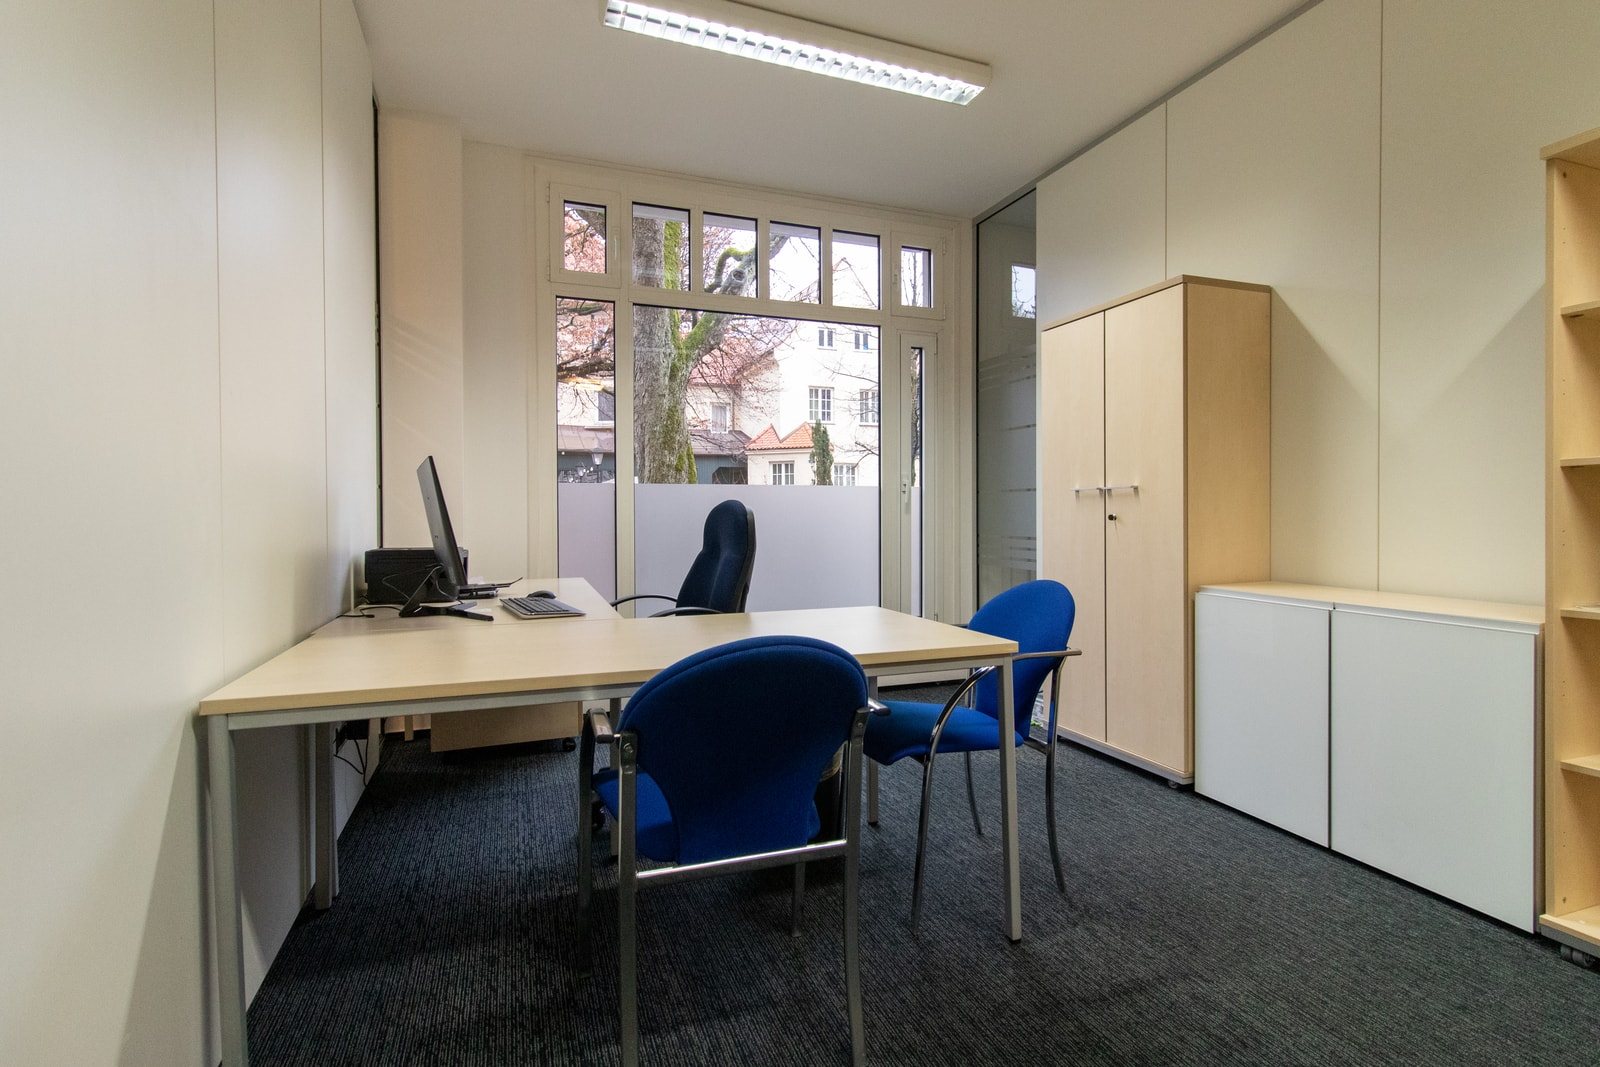 Offices available from around 11 - 36 m